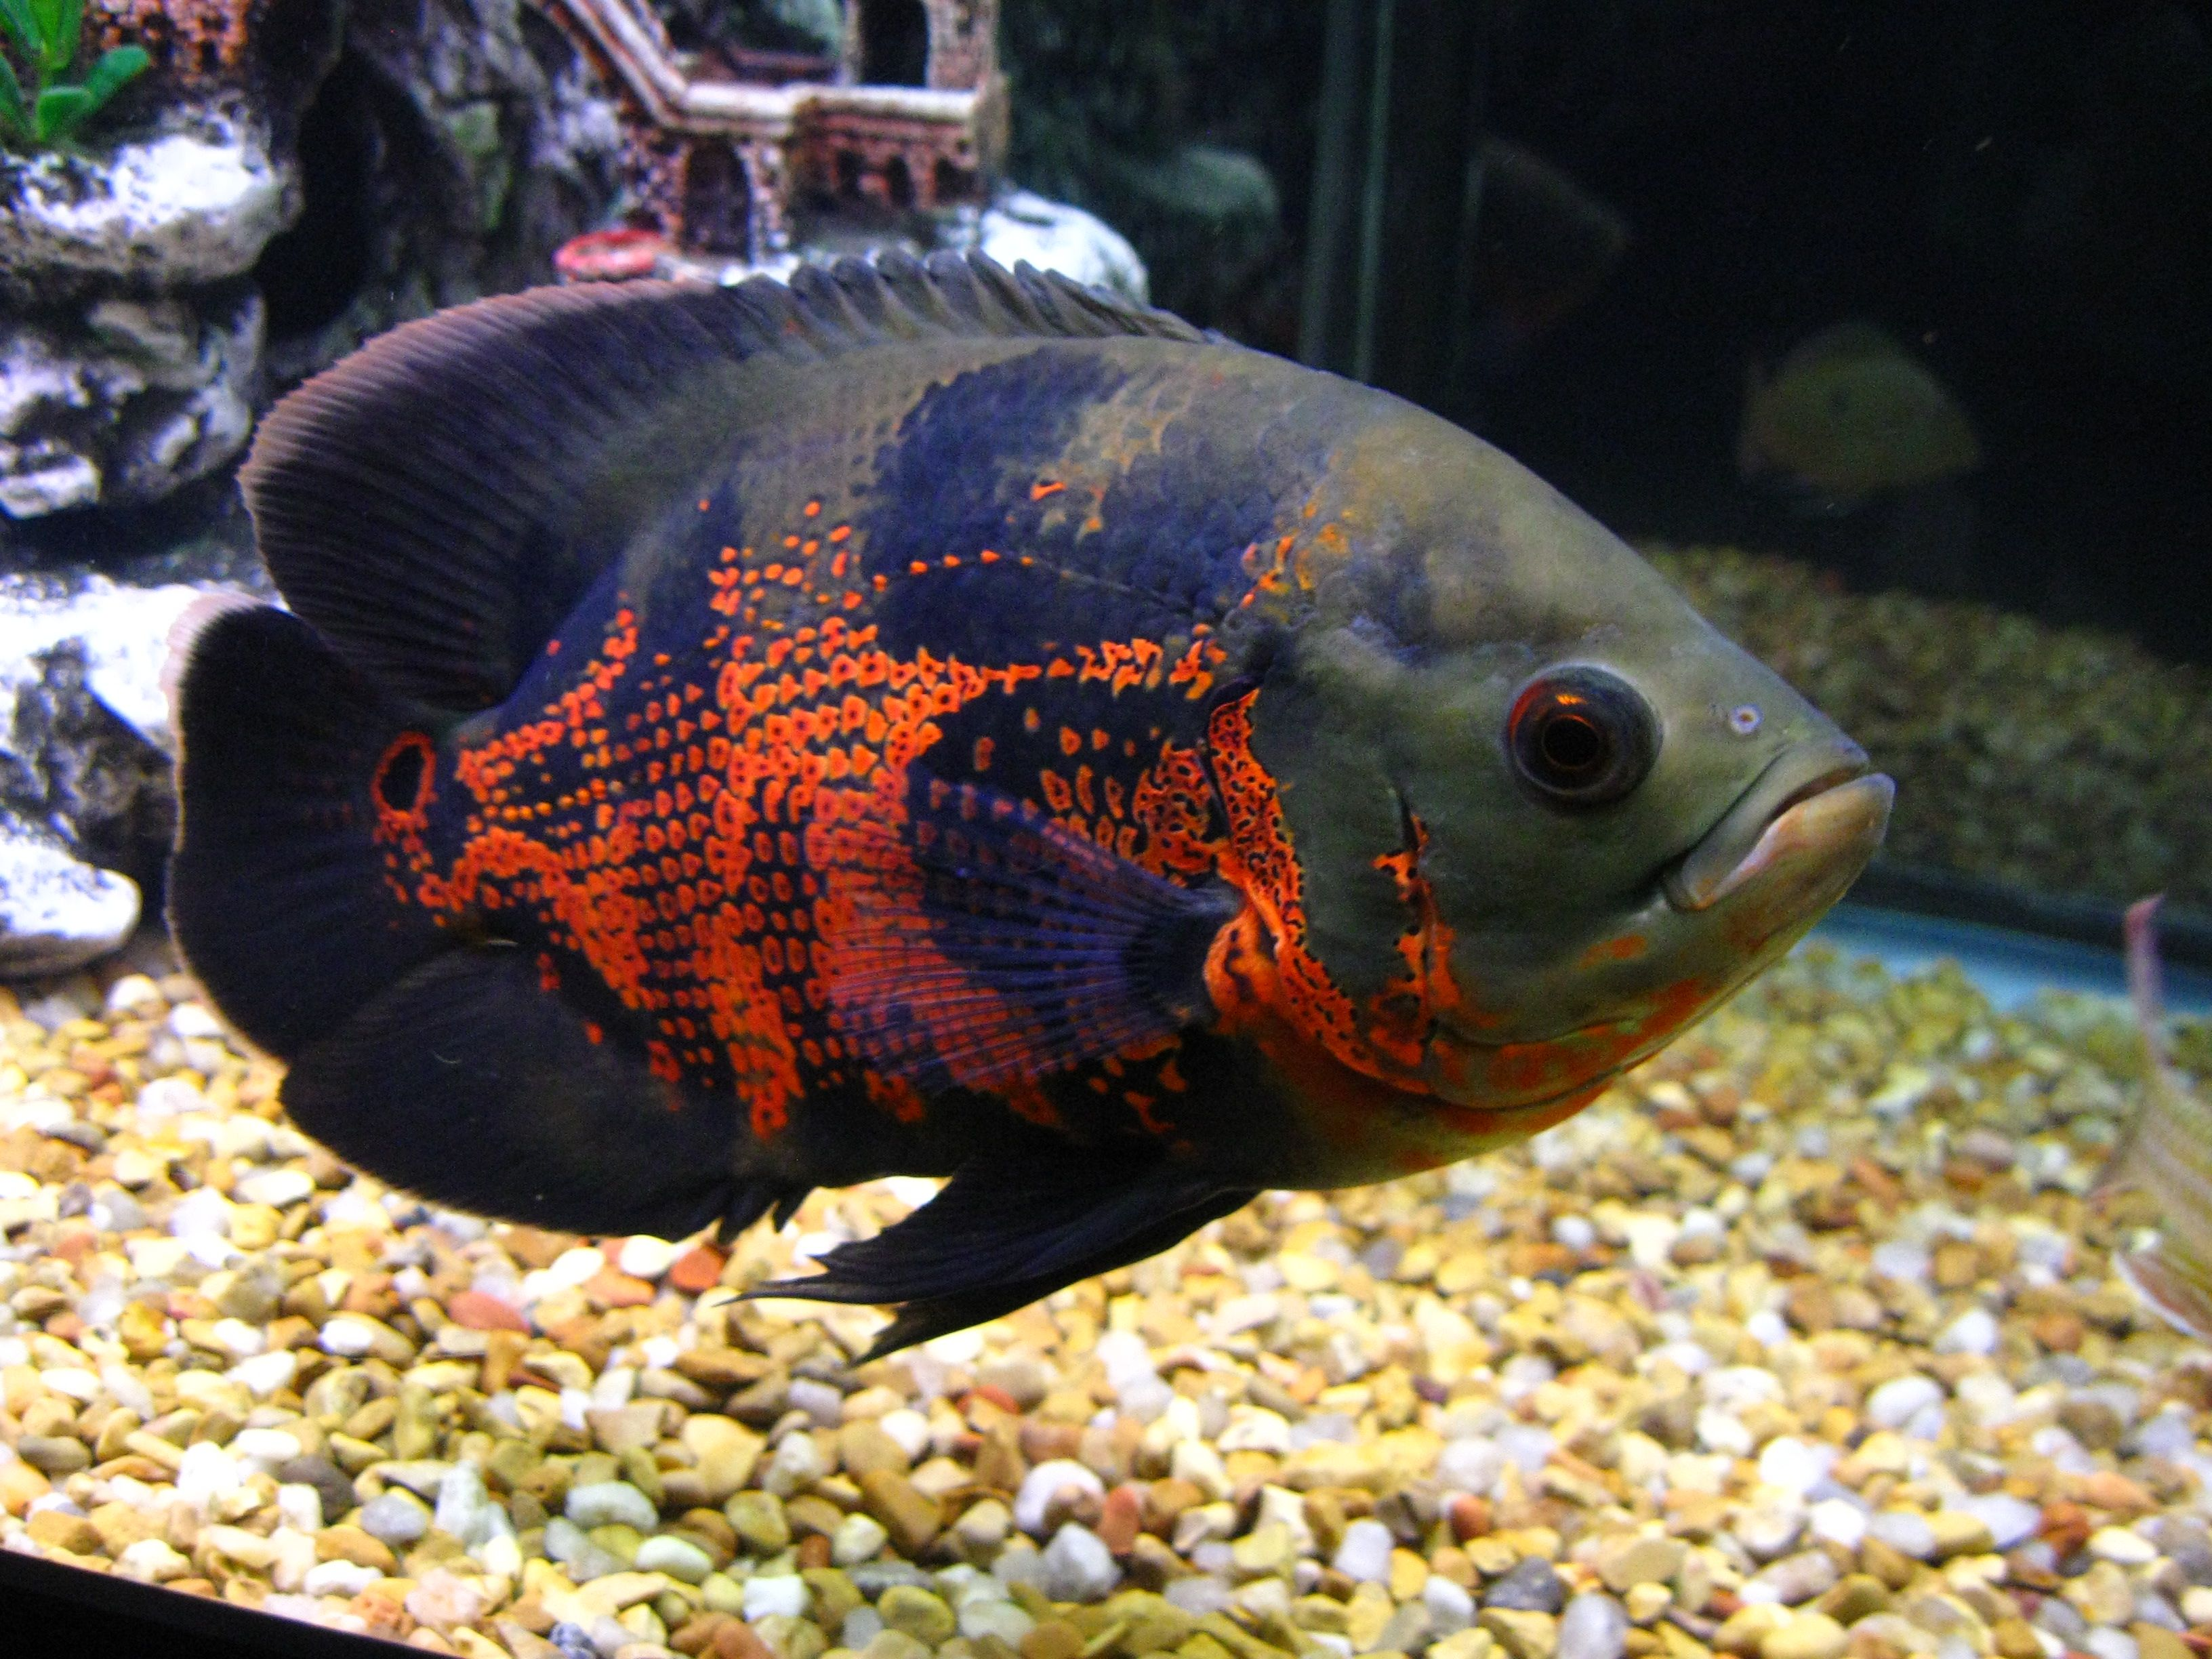 Freshwater aquarium fish lifespan - Pet Fish Stuff Tiger Oscar Cichlid He Looks Like The One I Had I Eventually Found Him A New Home As My 2 Parrot Fish Used To Bully Him